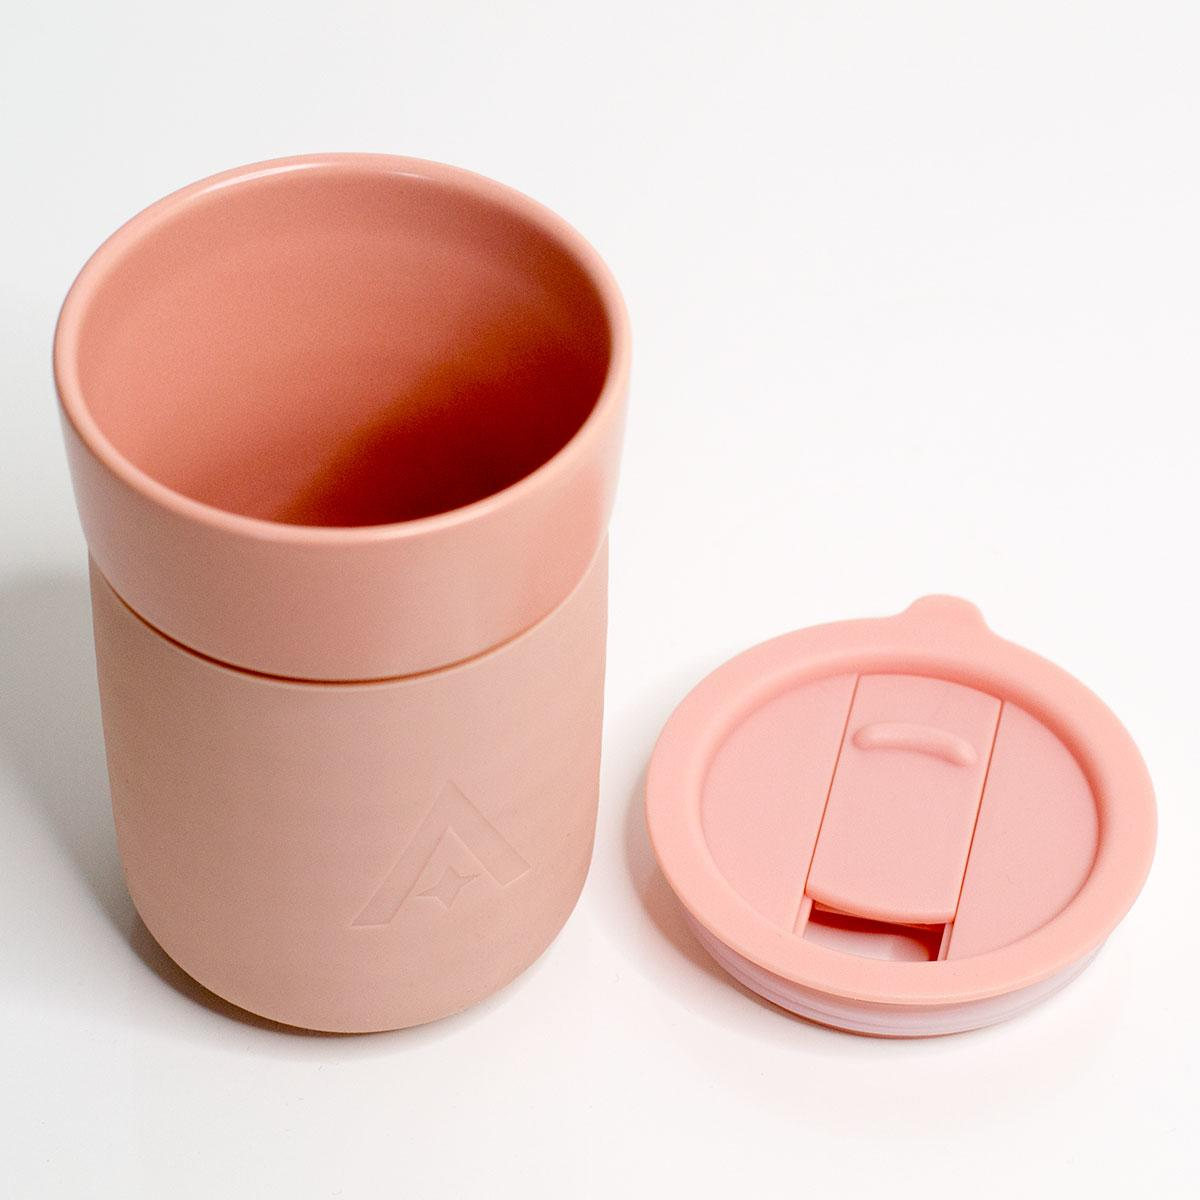 Carry Cup - The universal mug for use at home or on the move (Blush Pink)